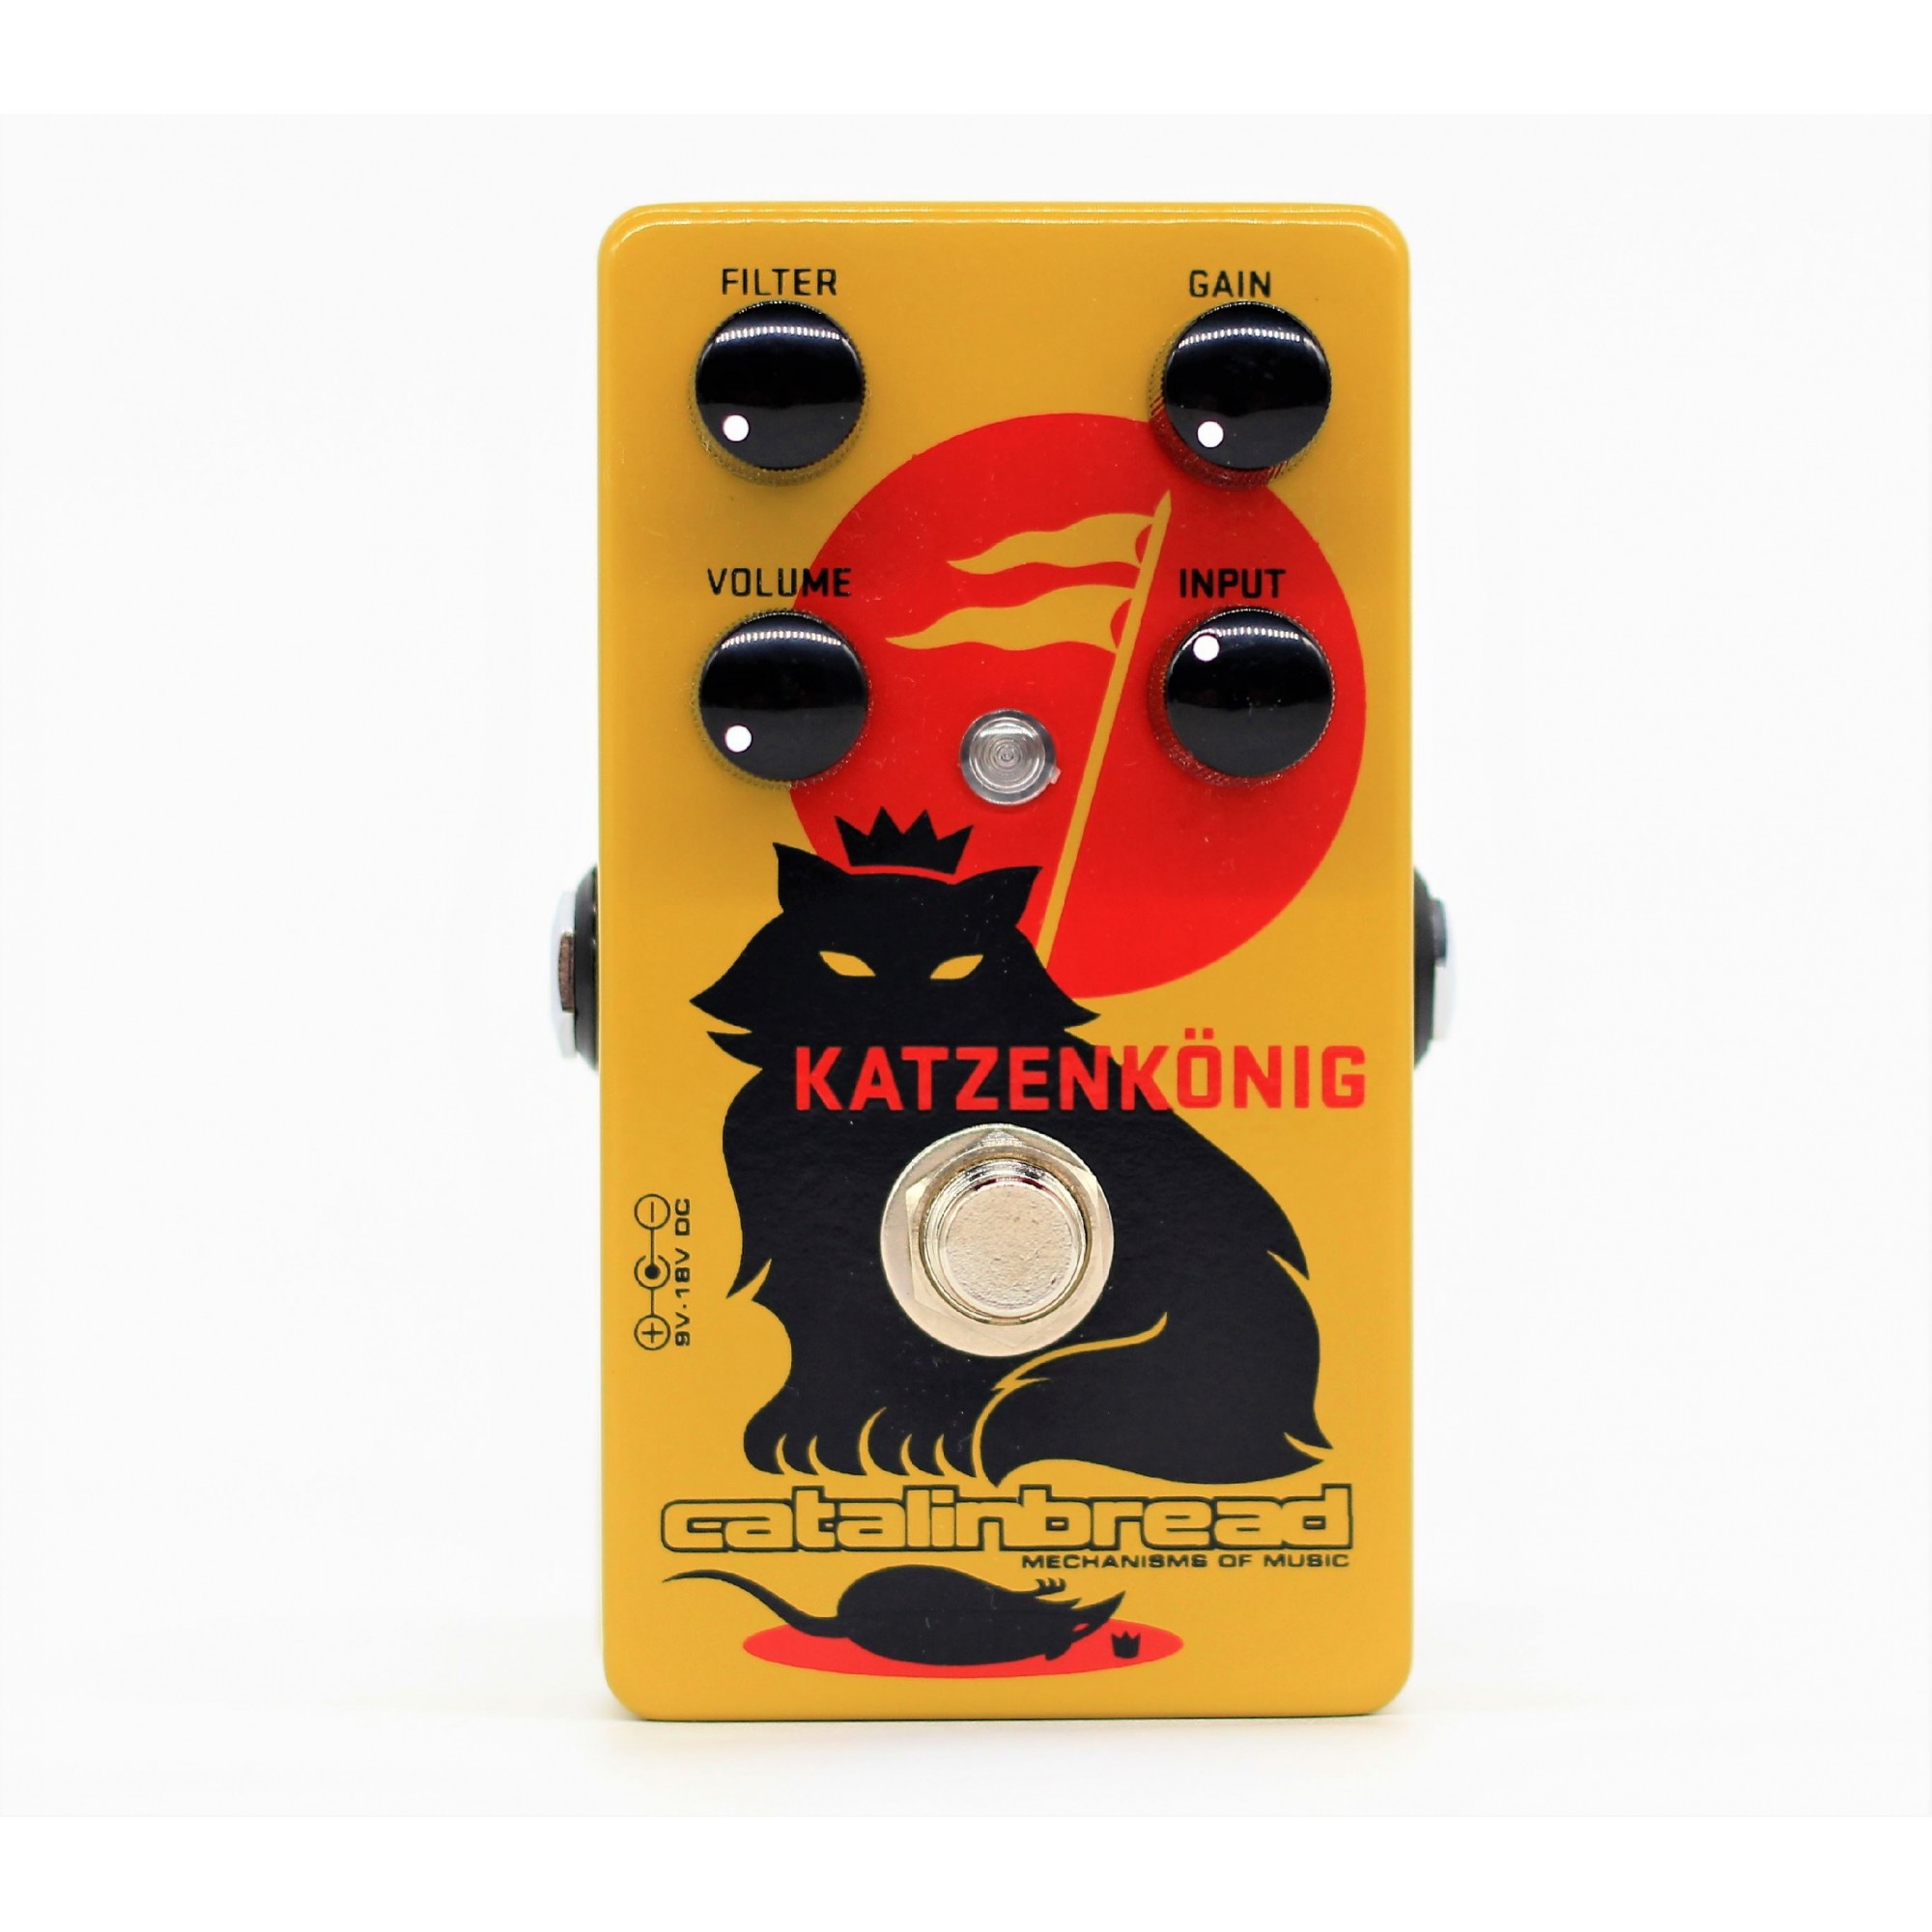 Catalinbread Katzenkonig Rat Bender